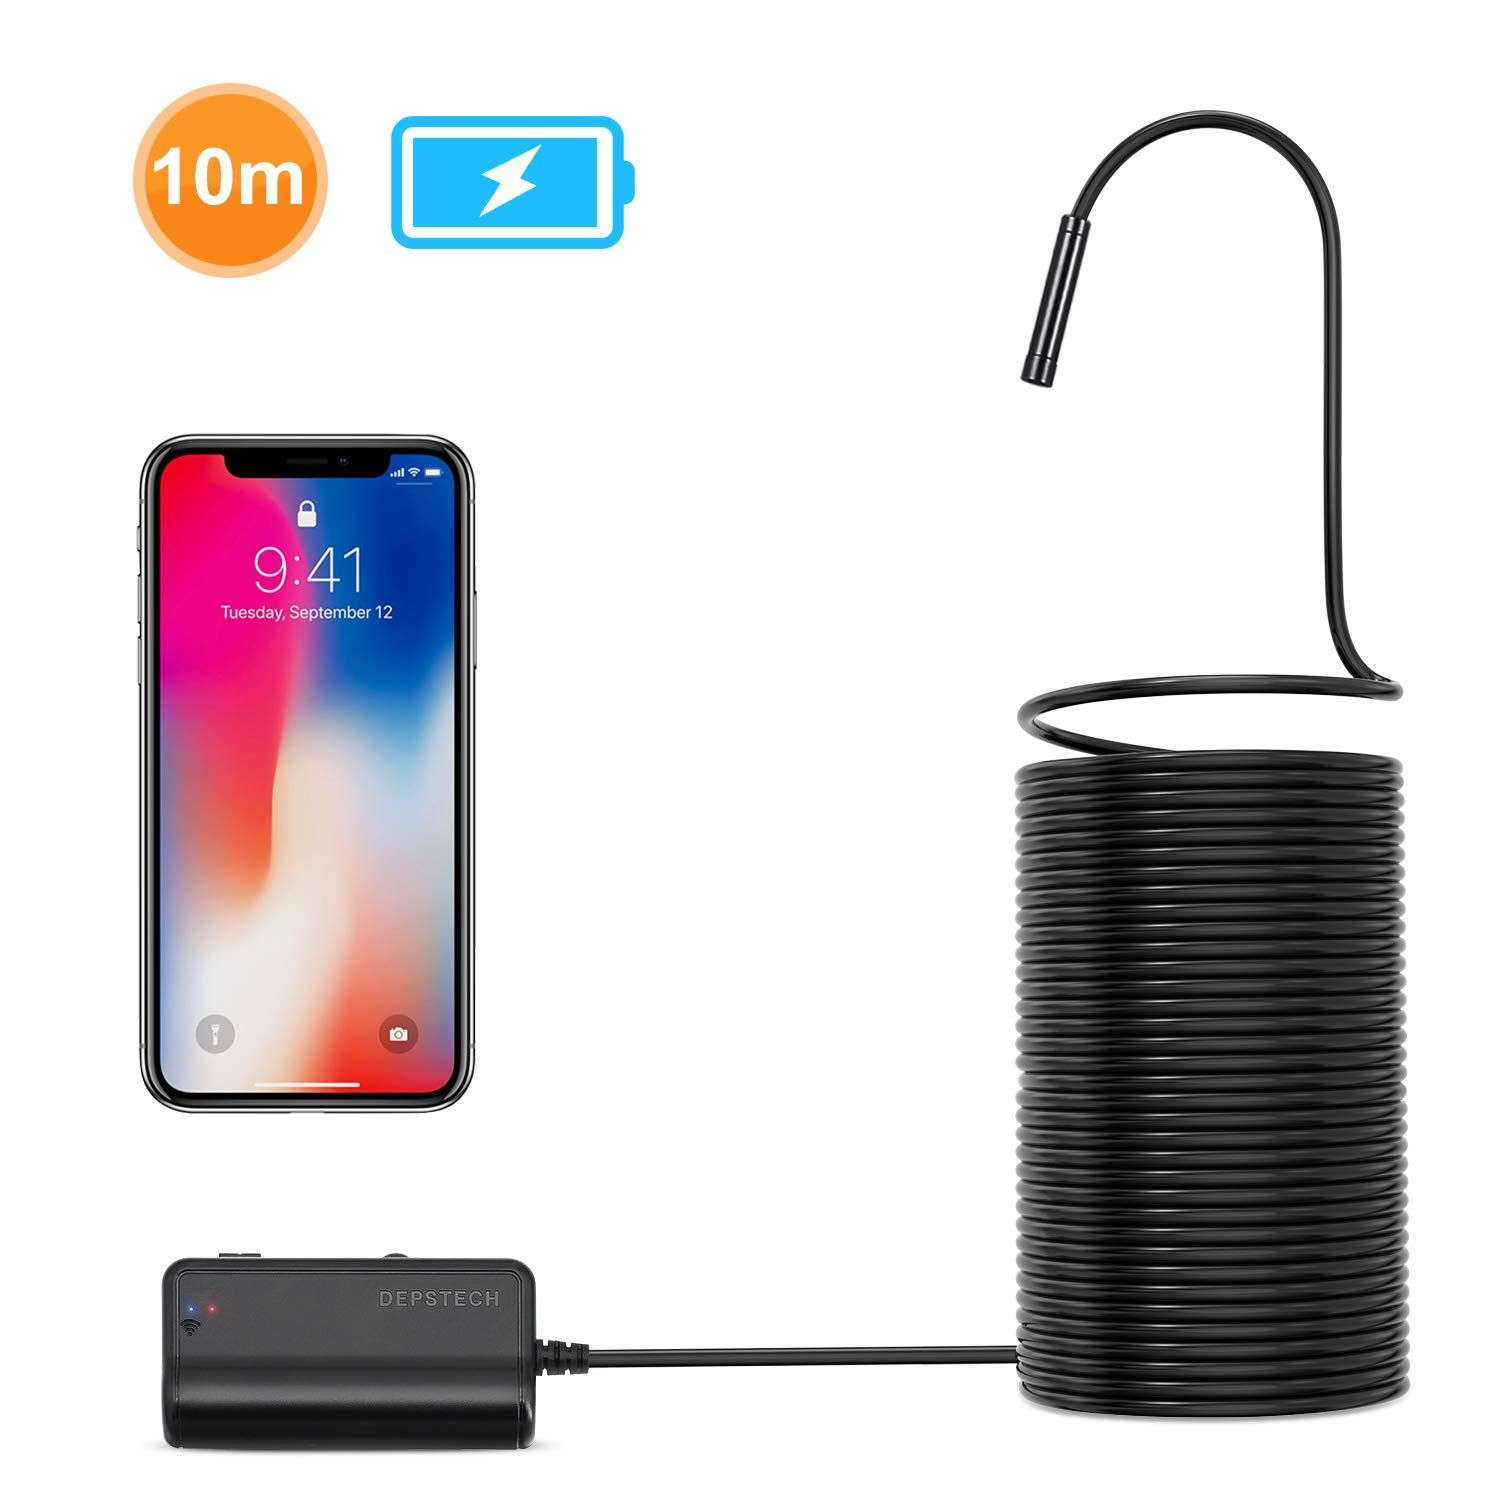 2.0 MP HD WiFi Borescope Inspection Camera,16 inch Focal Distance /& 2200mAh Battery Snake Camera for Android /& iOS Smartphone Tablet DEPSTECH 1200P Semi-Rigid Wireless Endoscope